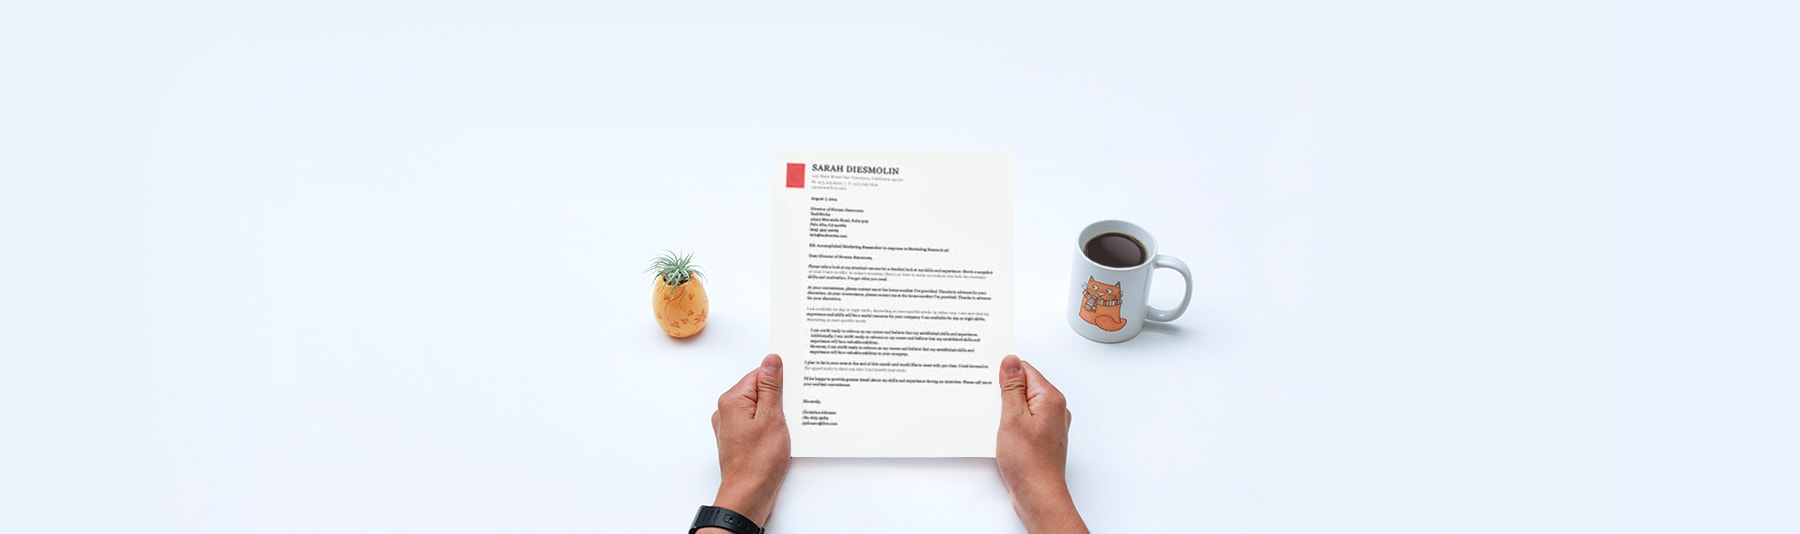 Order essay for one page,do my assignement   - MediMoon niw